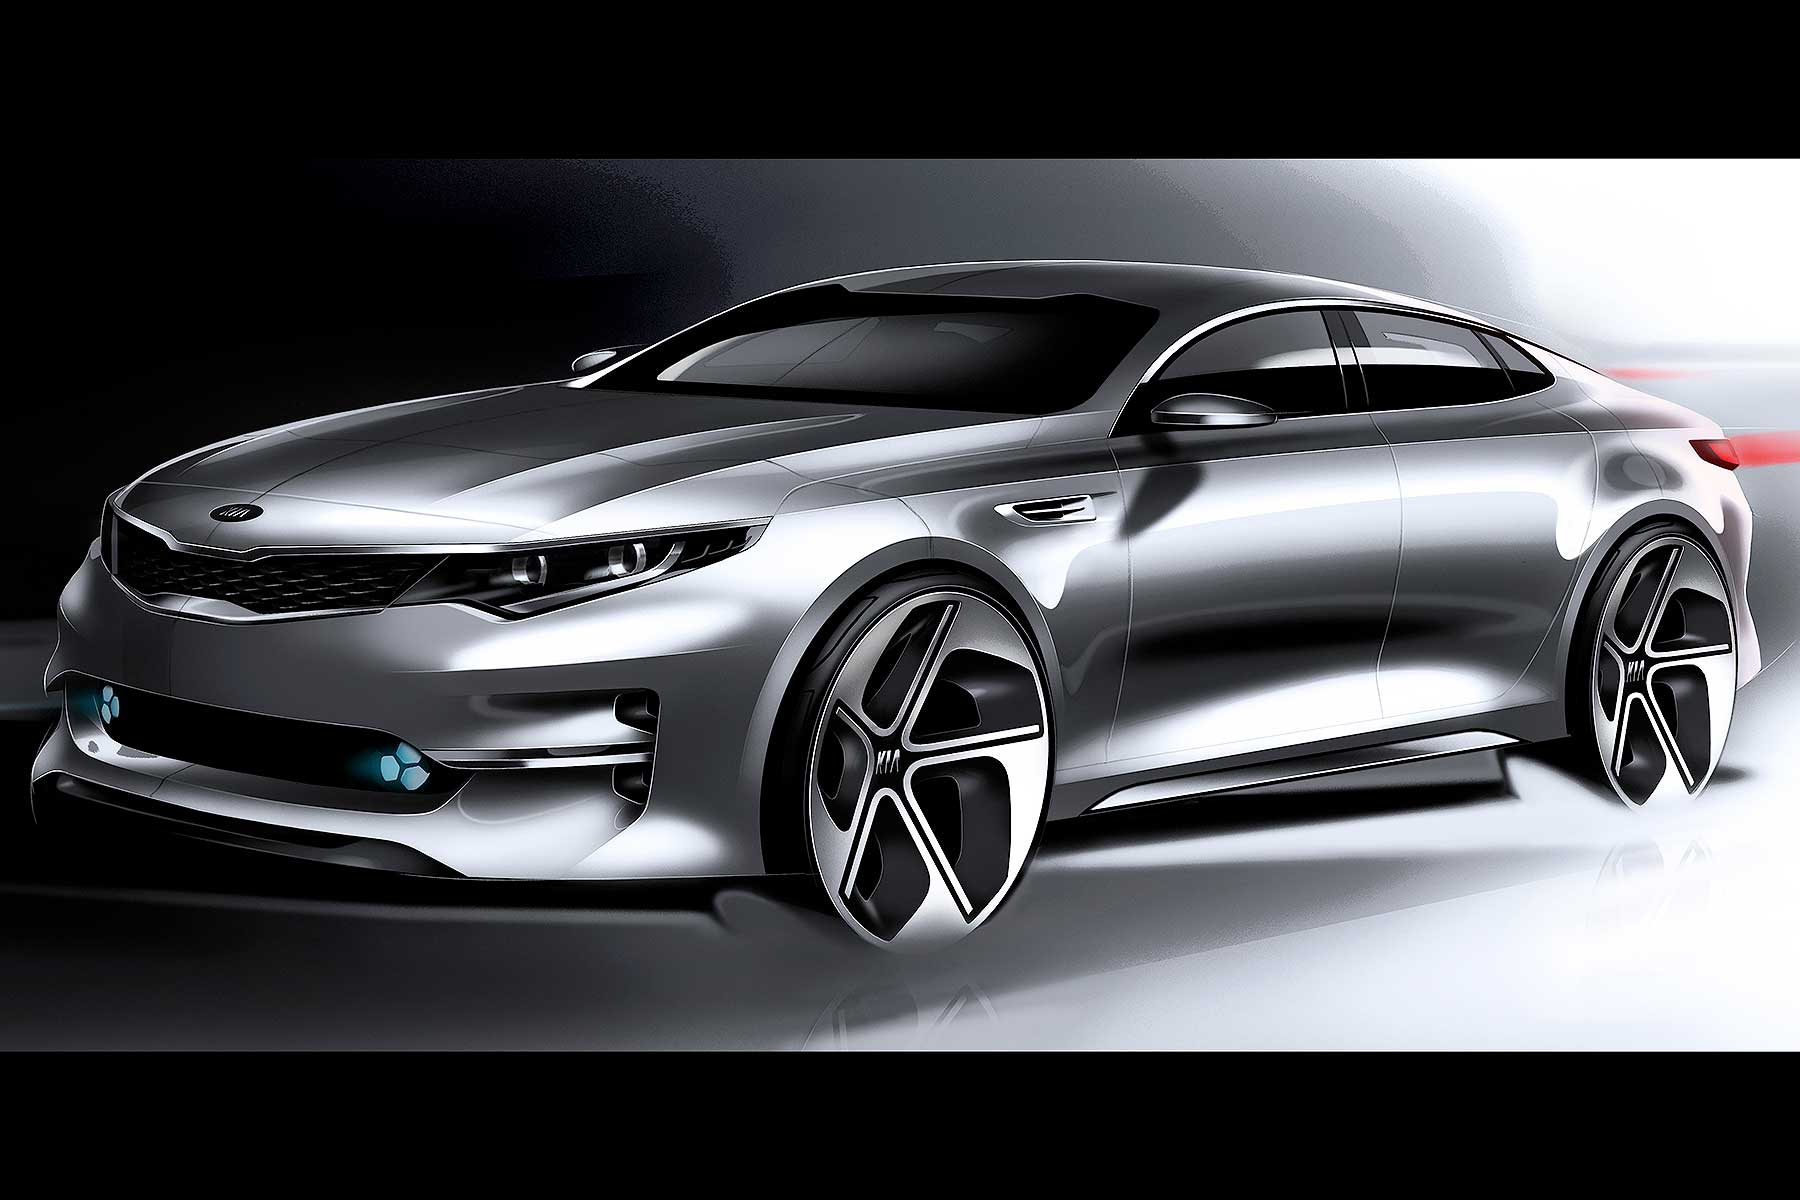 The New Kia Optima Will Make Its World Debut At The 2015 New York Motor  Show U2013 Five Years After The Original Car Was Revealed There.